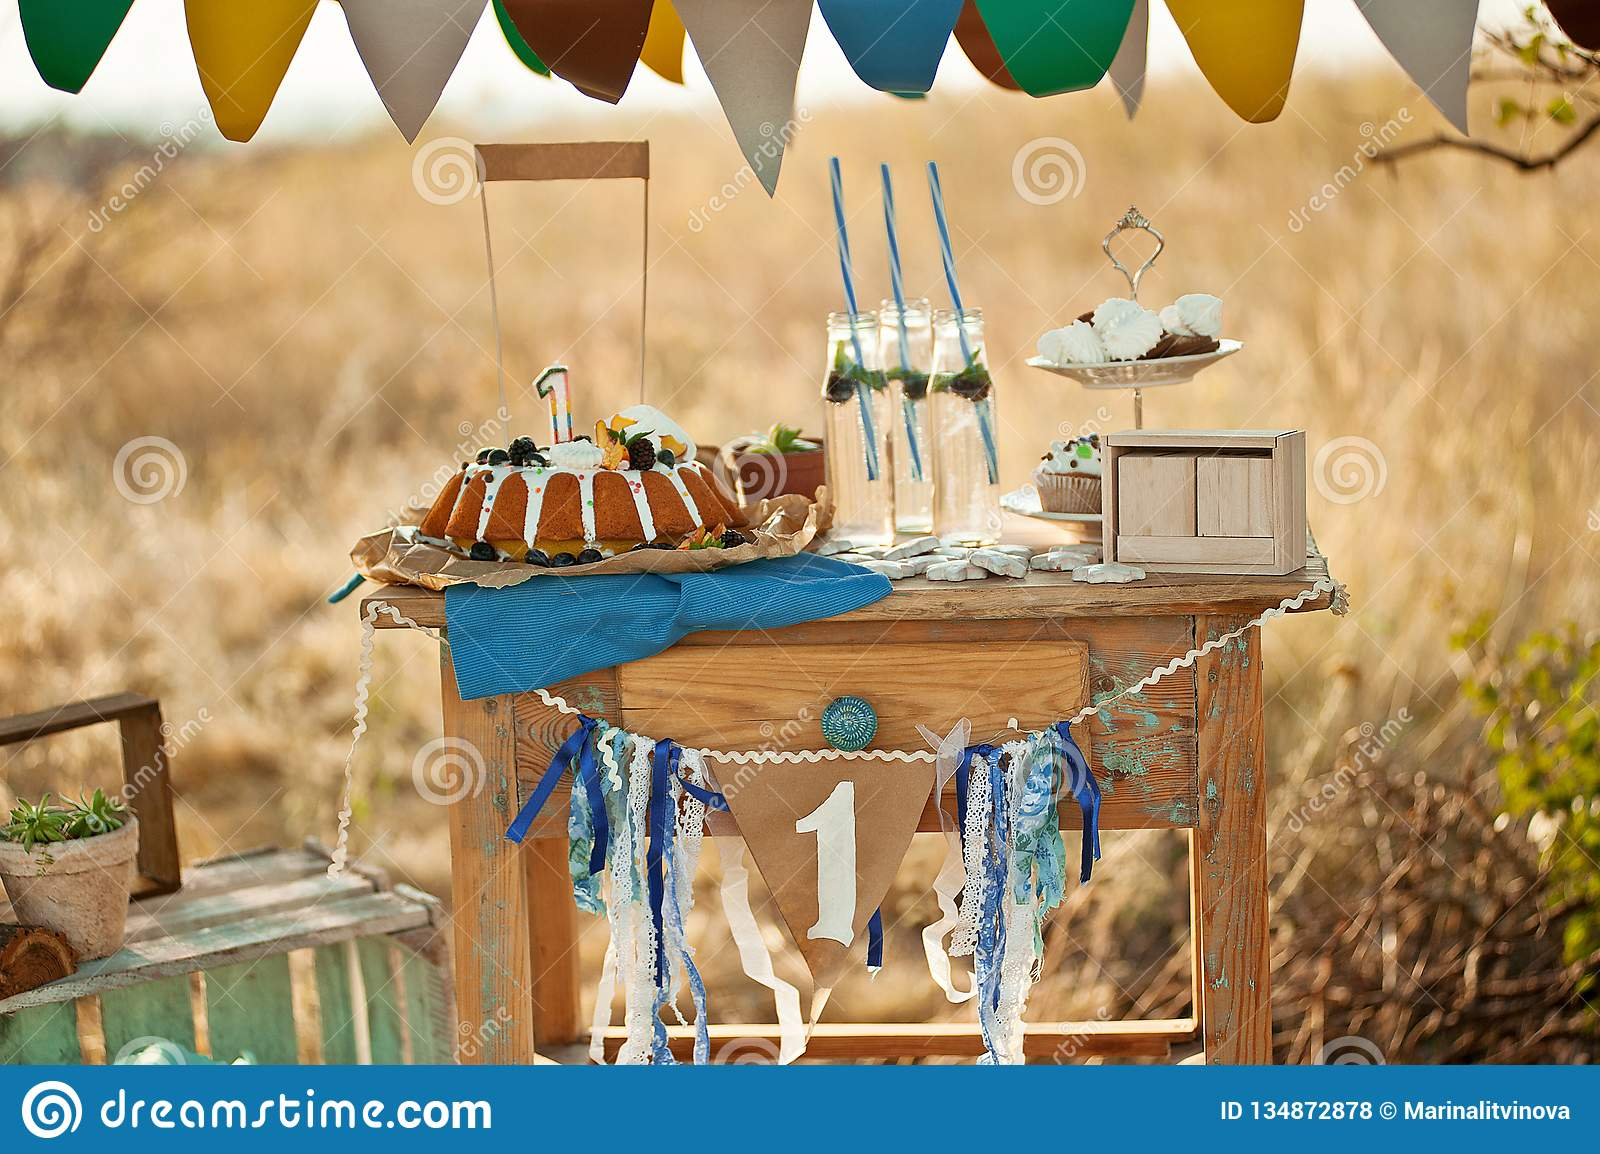 Outdoor Candy Bar And Decorations For Birthday Party Stock Photo Image Of Dessert Beautiful 134872878